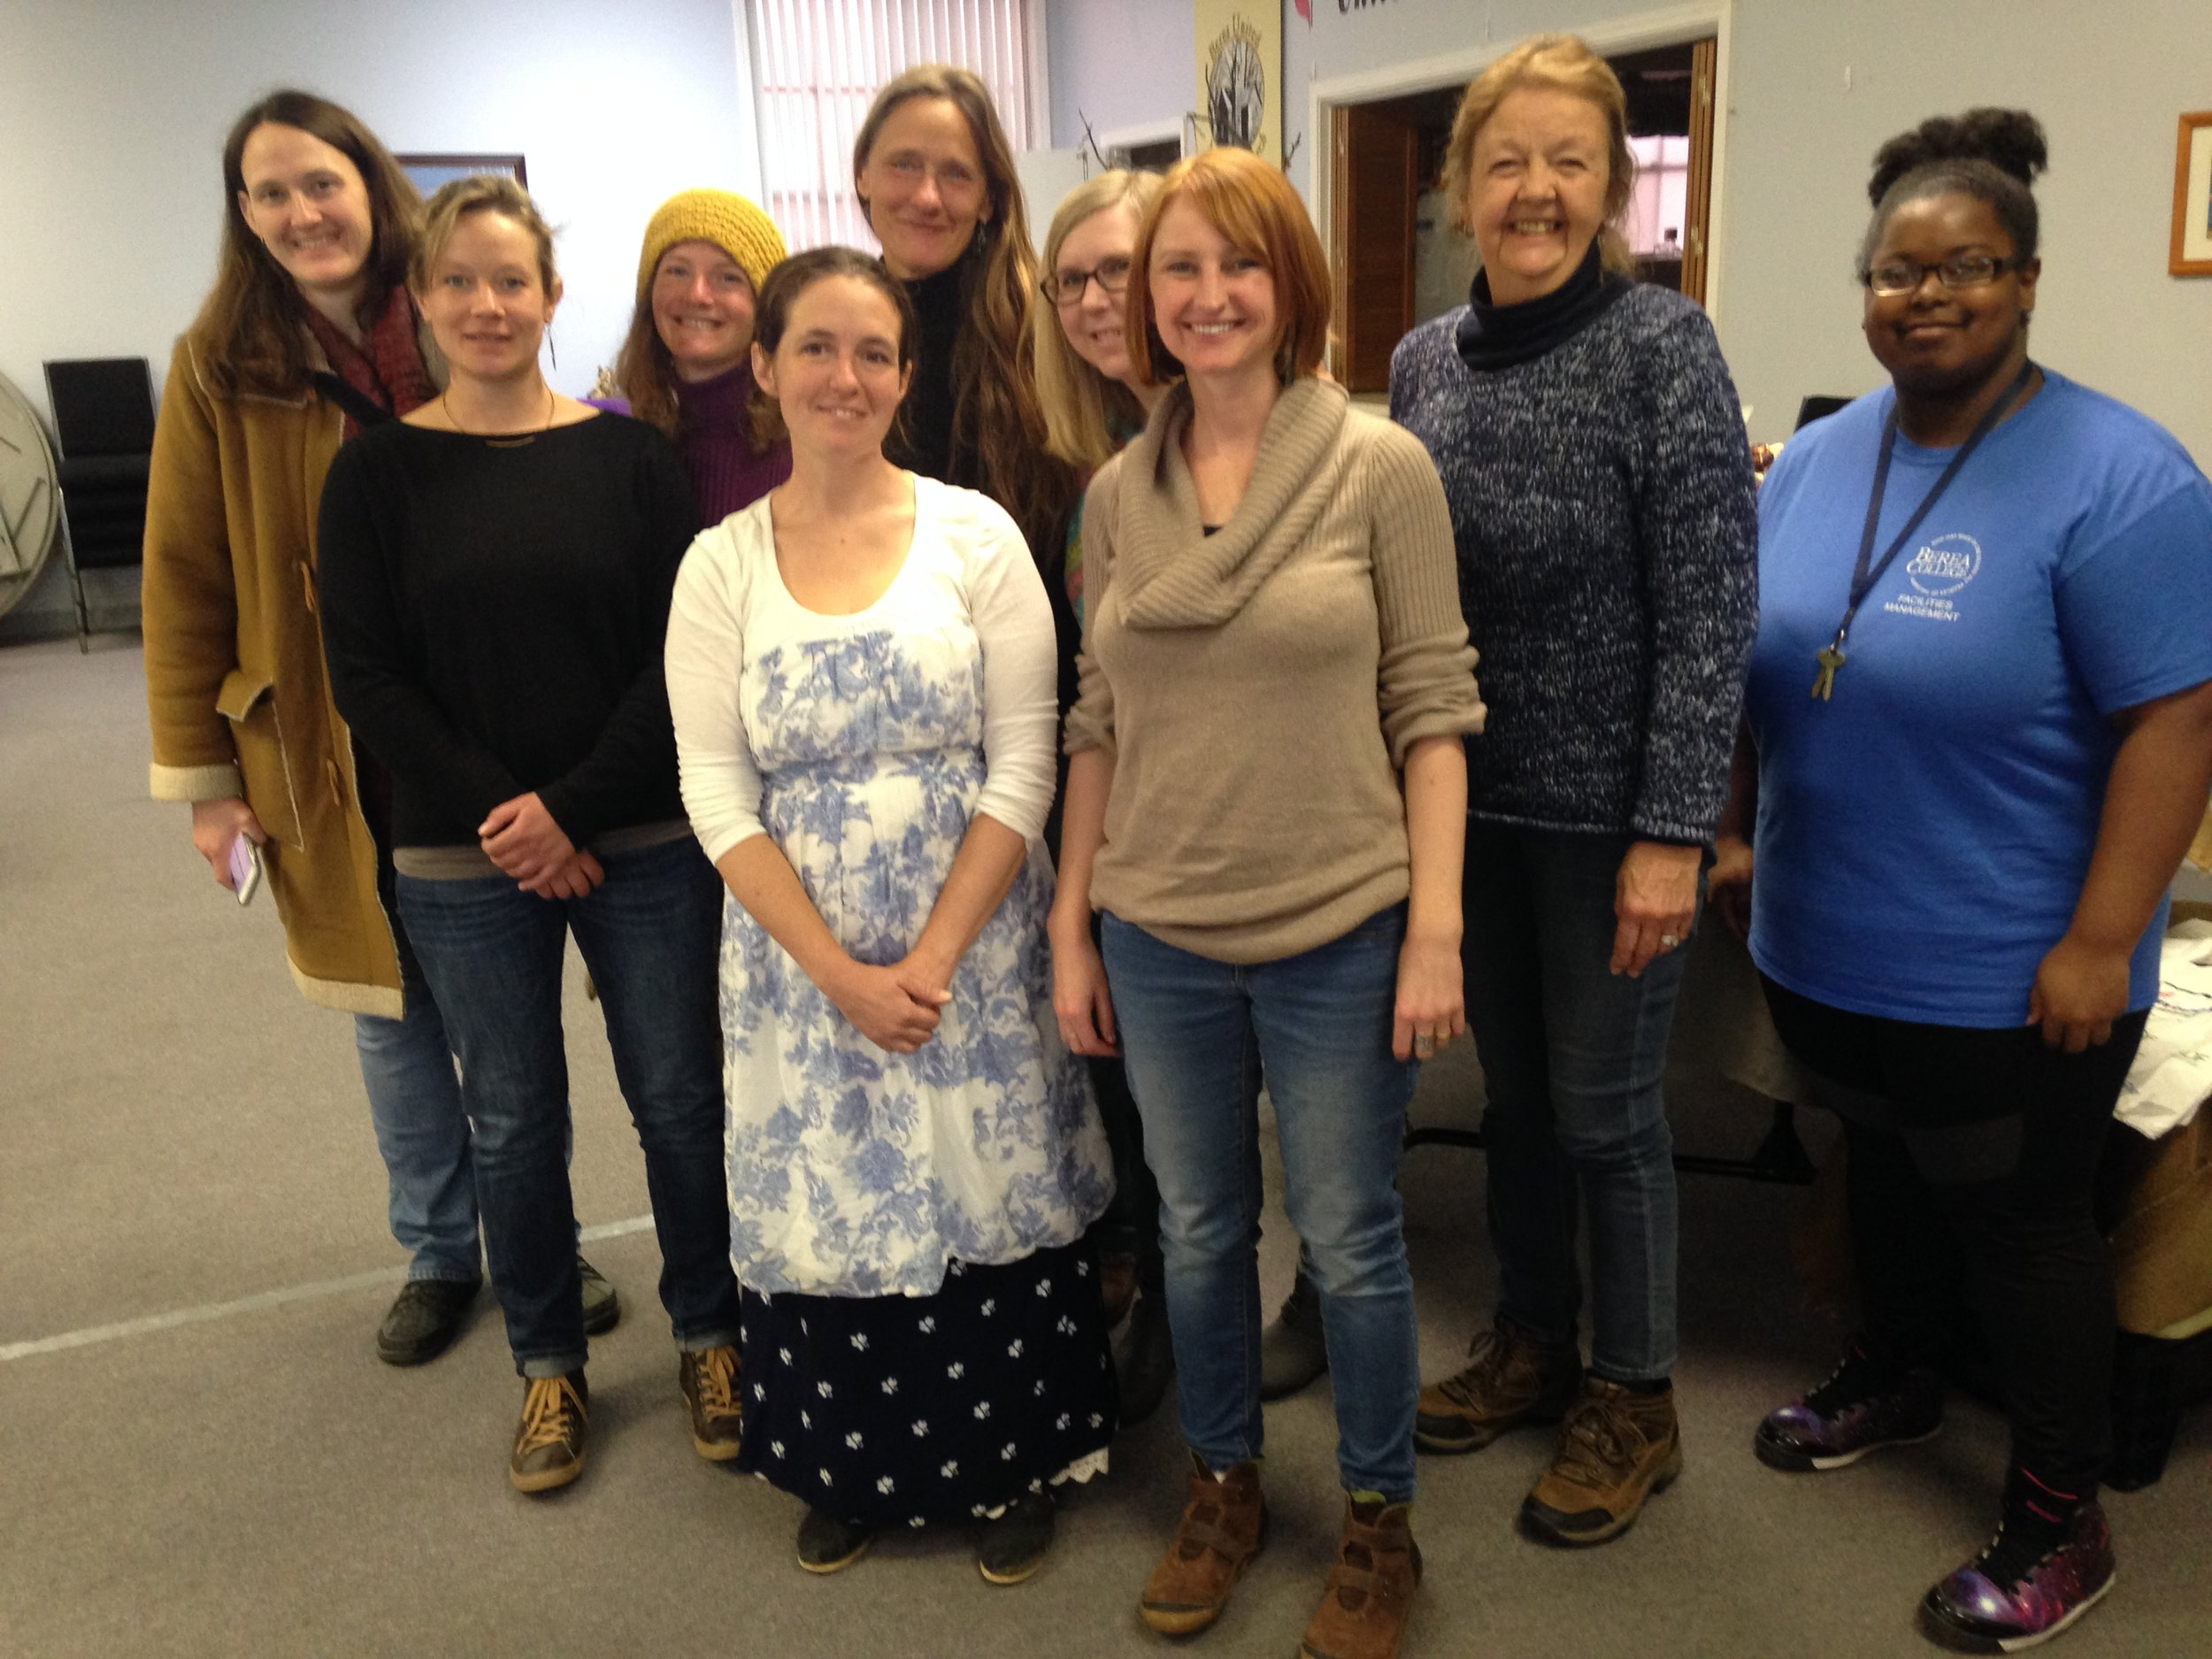 Here are just a handful of our Berea Farmers Market cooperative members and board members from left to right; Amber Flindt (community board member), Tabea Wolf-Fourman (vendor and board president), Xyara Asplen (vendor), Laurie White (vendor and vice president board member), Susana Lein (vendor), Julie Dalton (community board member), Faye Adams-Eaton (manager), Lynne Gagliardi (vendor) and Jasmine McClain our wonderful volunteer!